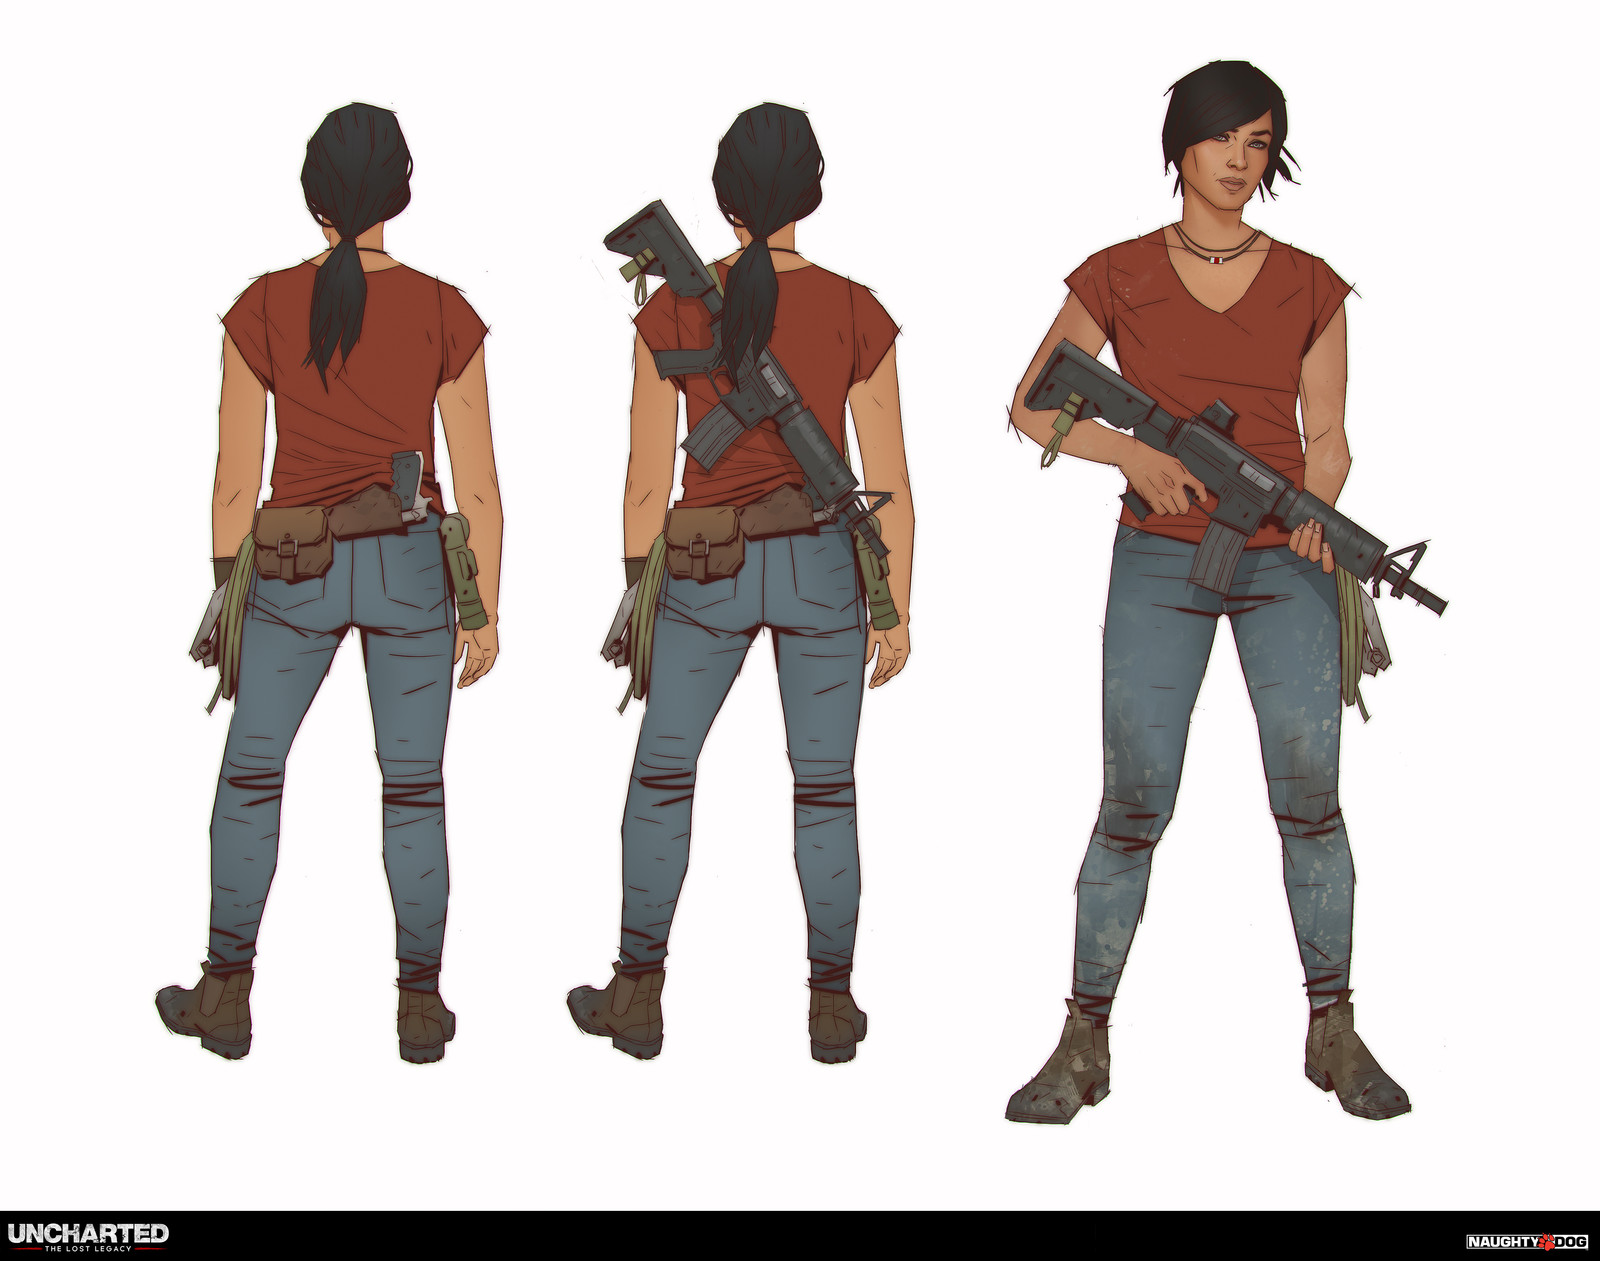 Chloe Frazer - final costume concept before starting the scanning process.